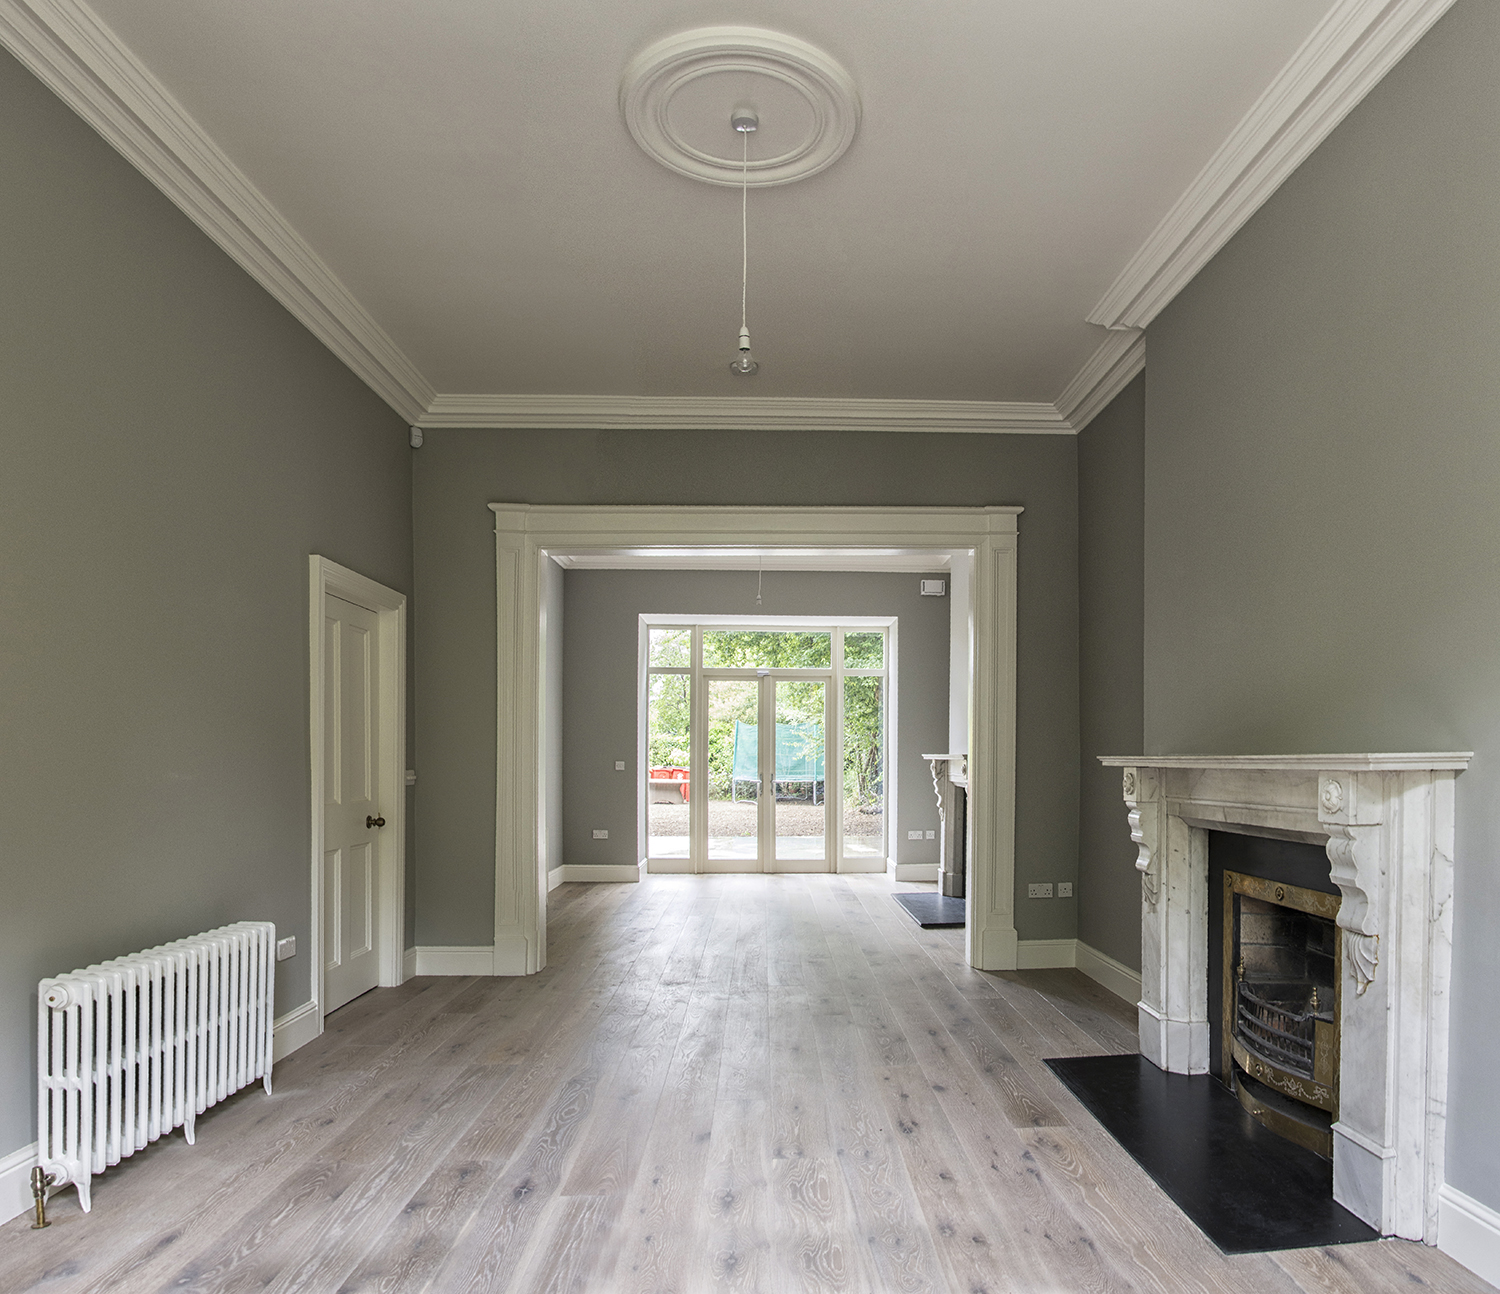 Refurbished living and dining rooms